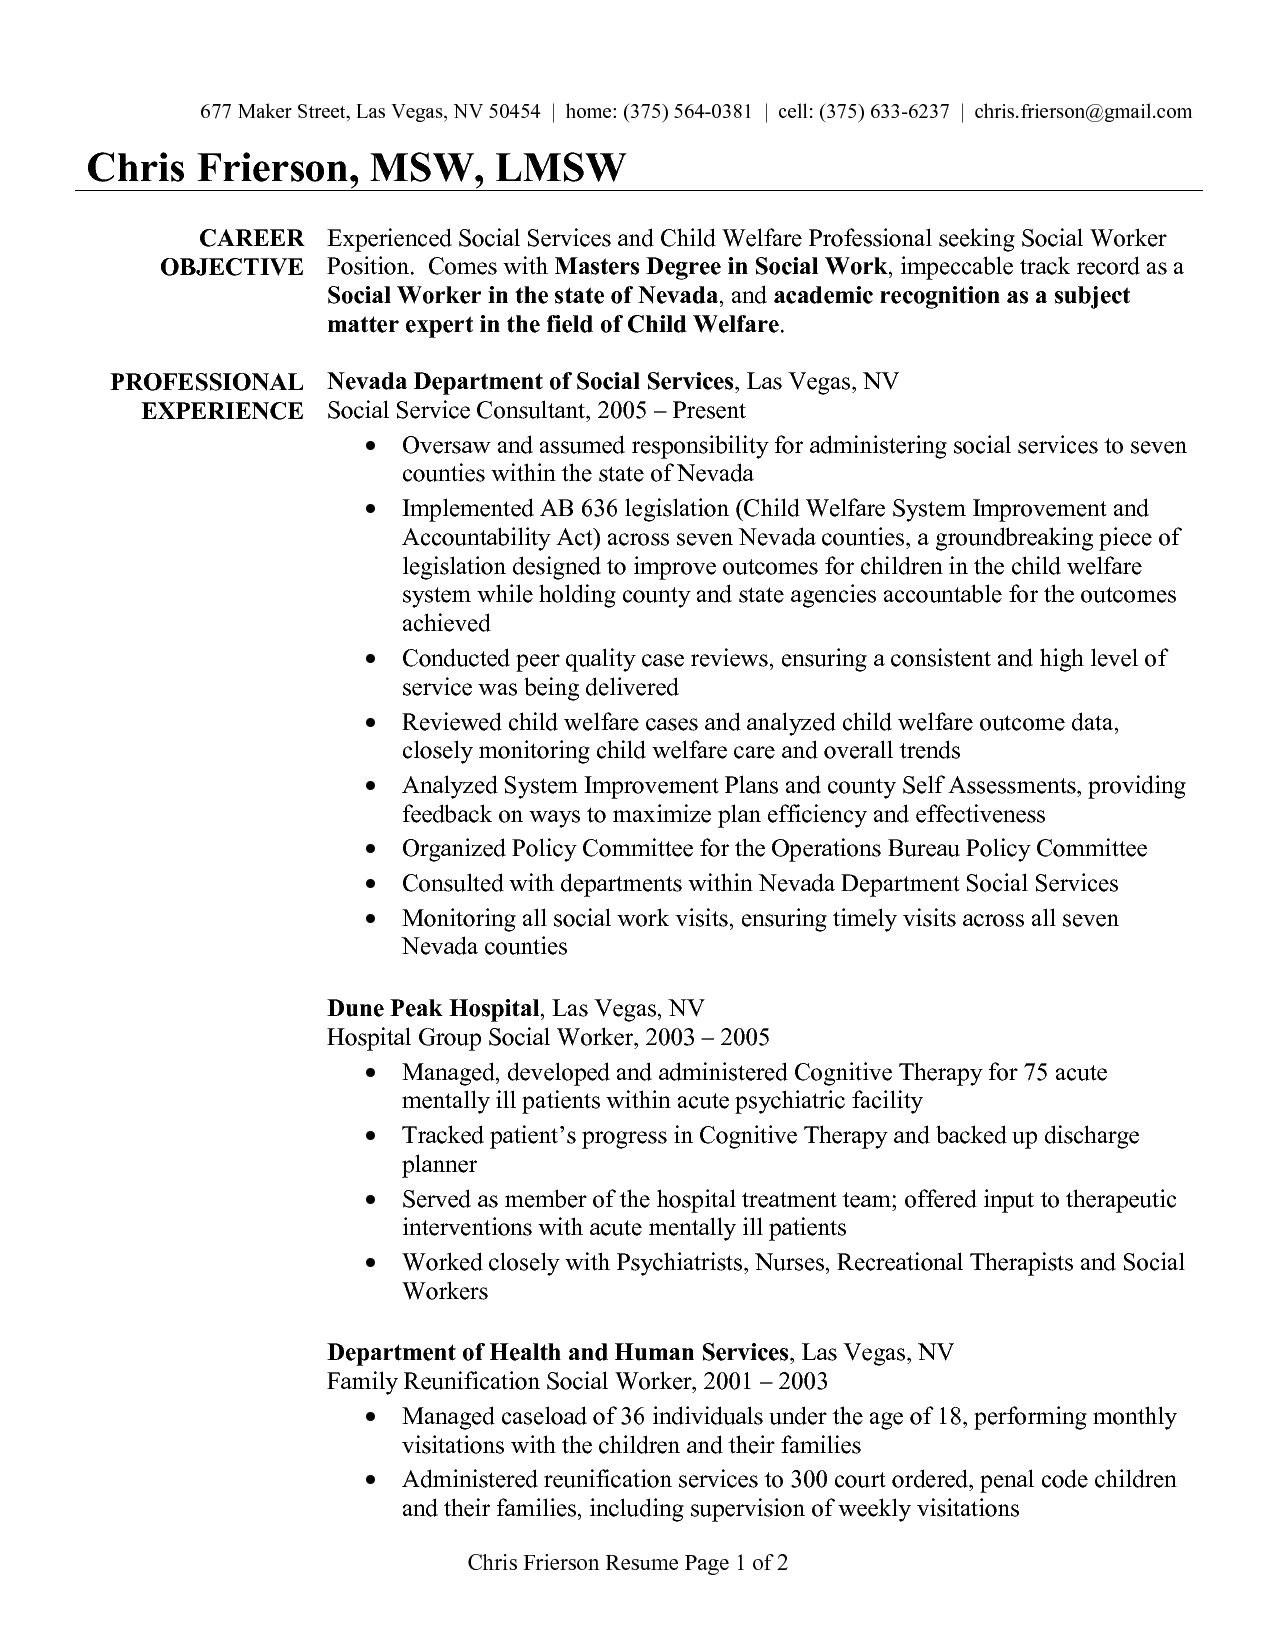 Game Designer Resume Sample ResumecompanionCom  Resume Samples